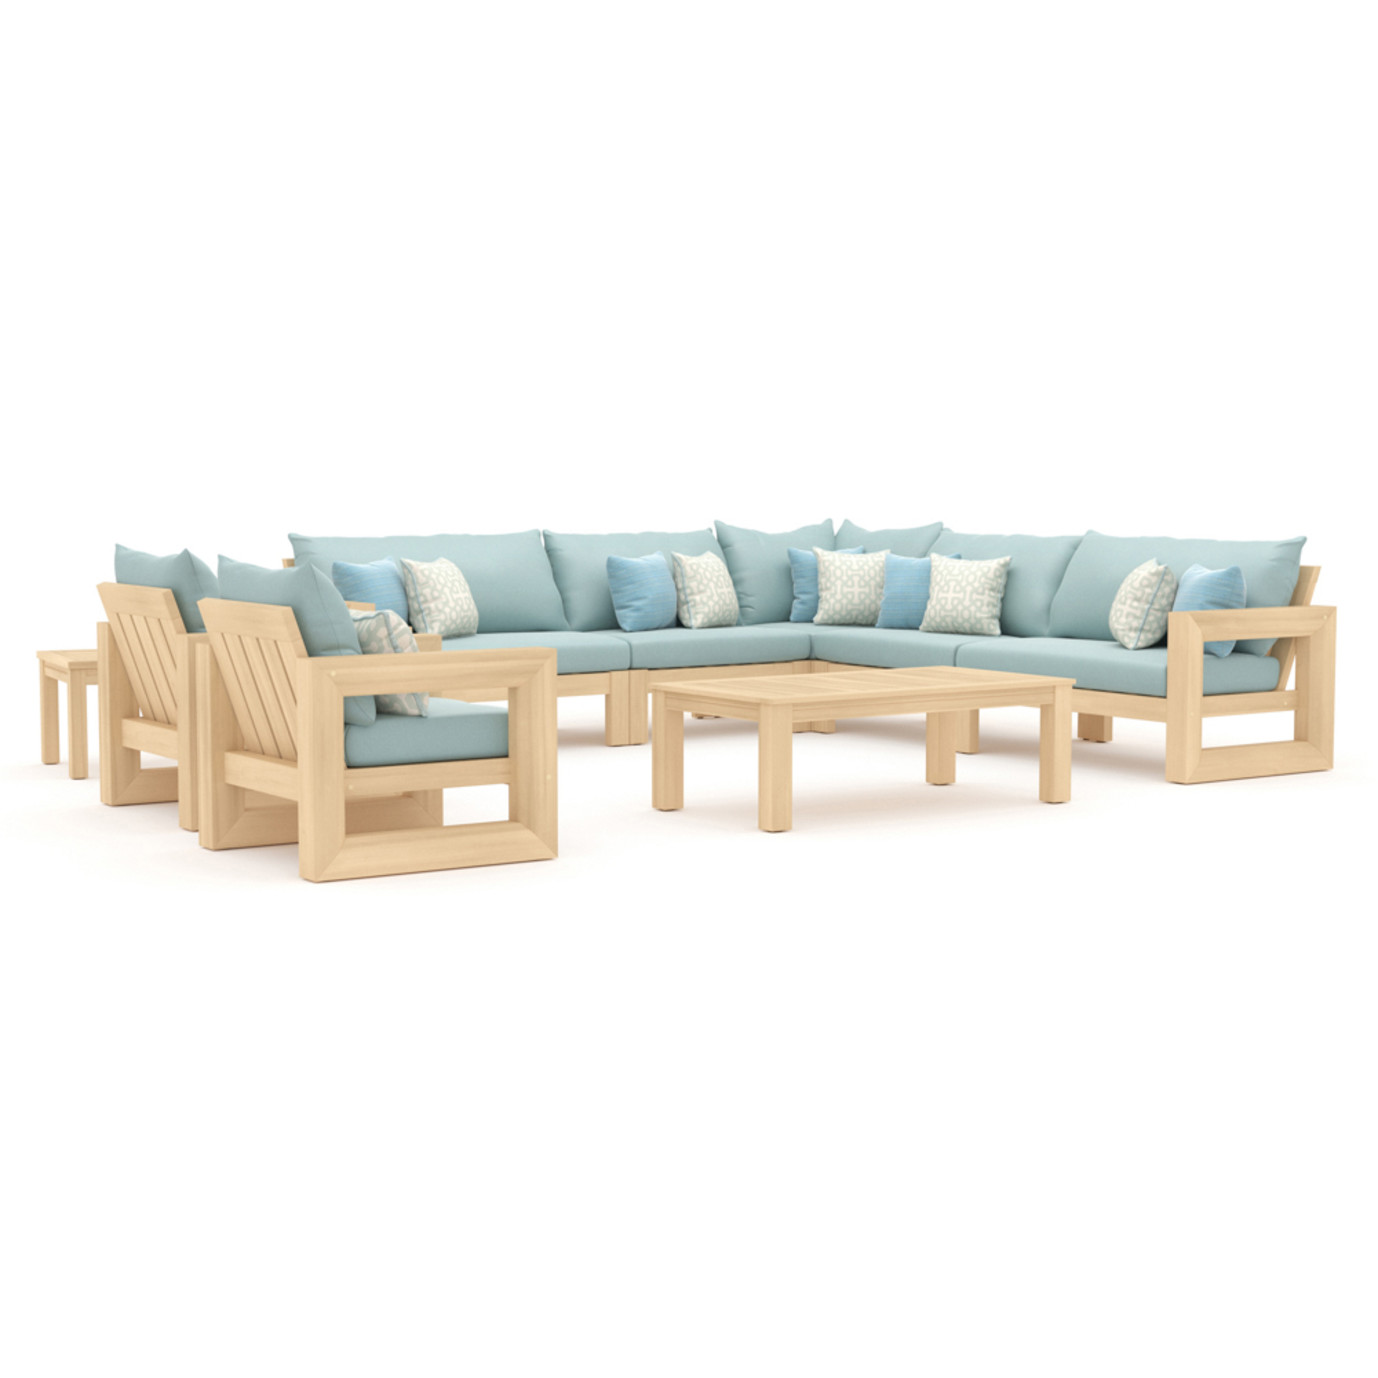 Benson 9pc Seating Set - Spa Blue